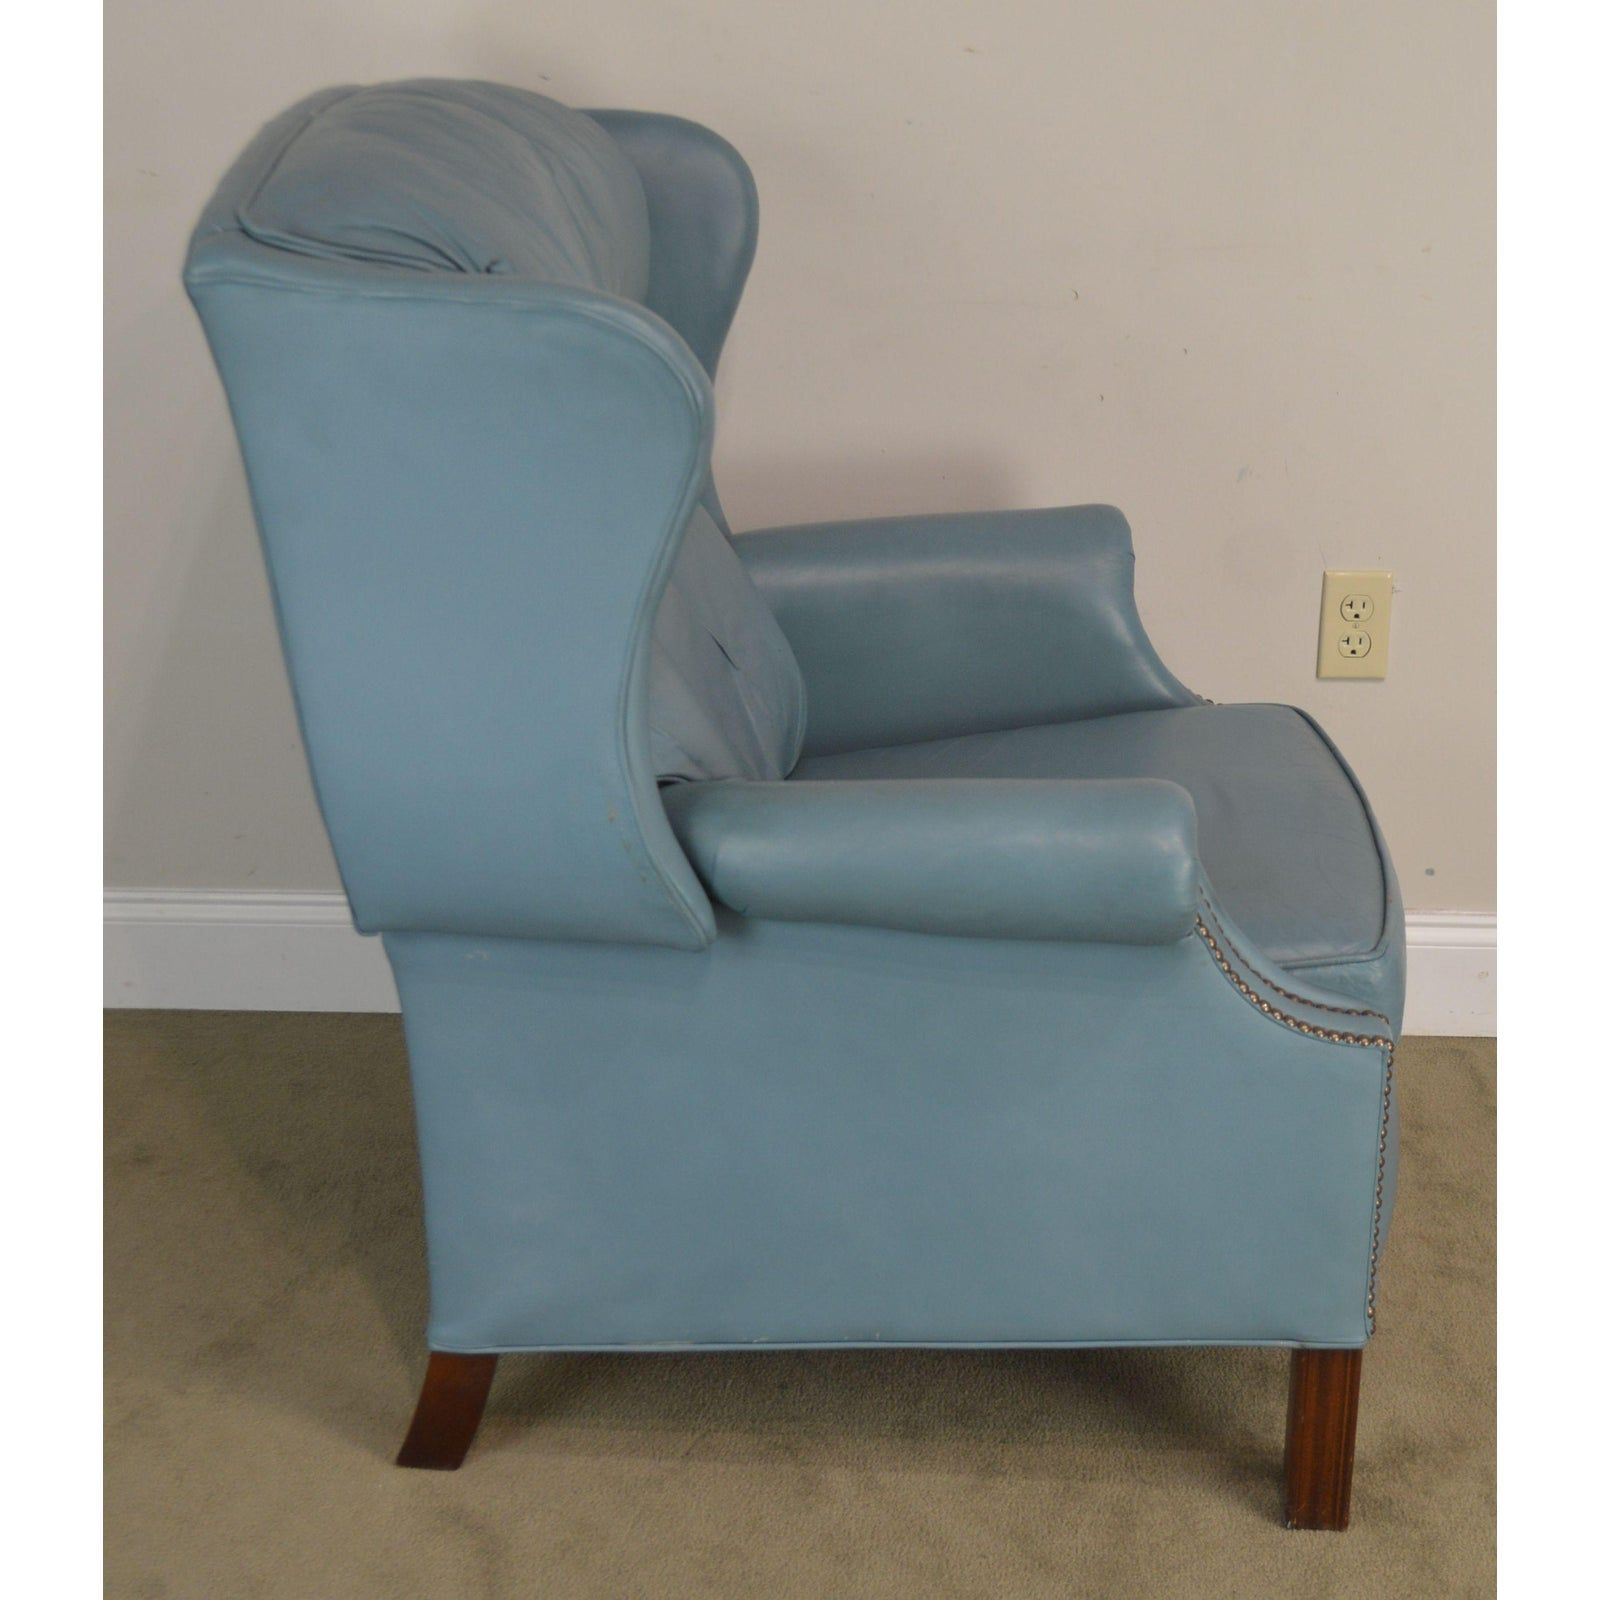 Bradington Young Baby Blue Leather Recliner Chairish Leather Recliner Leather Upholstery Furniture